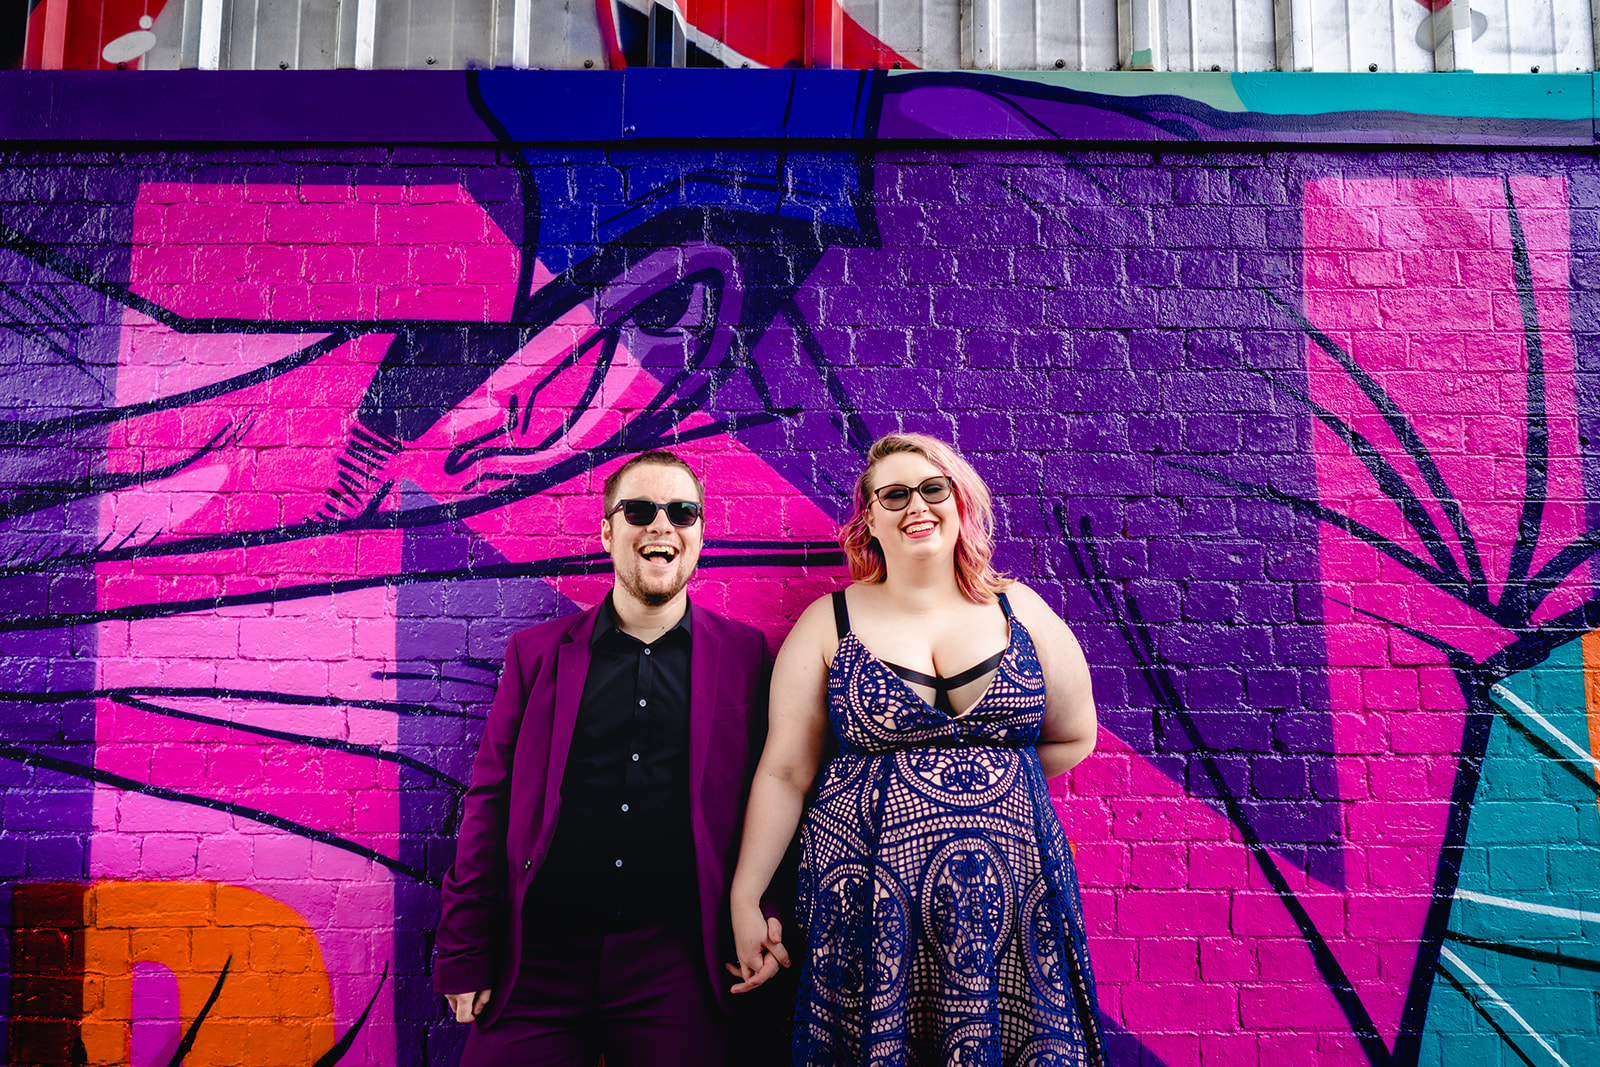 engagement shoots - birmingham engagement shoot - colourful wedding photoshoot - quirky wedding photos - fun wedding photography - alternative wedding - couple holding hands in front of colourful wall